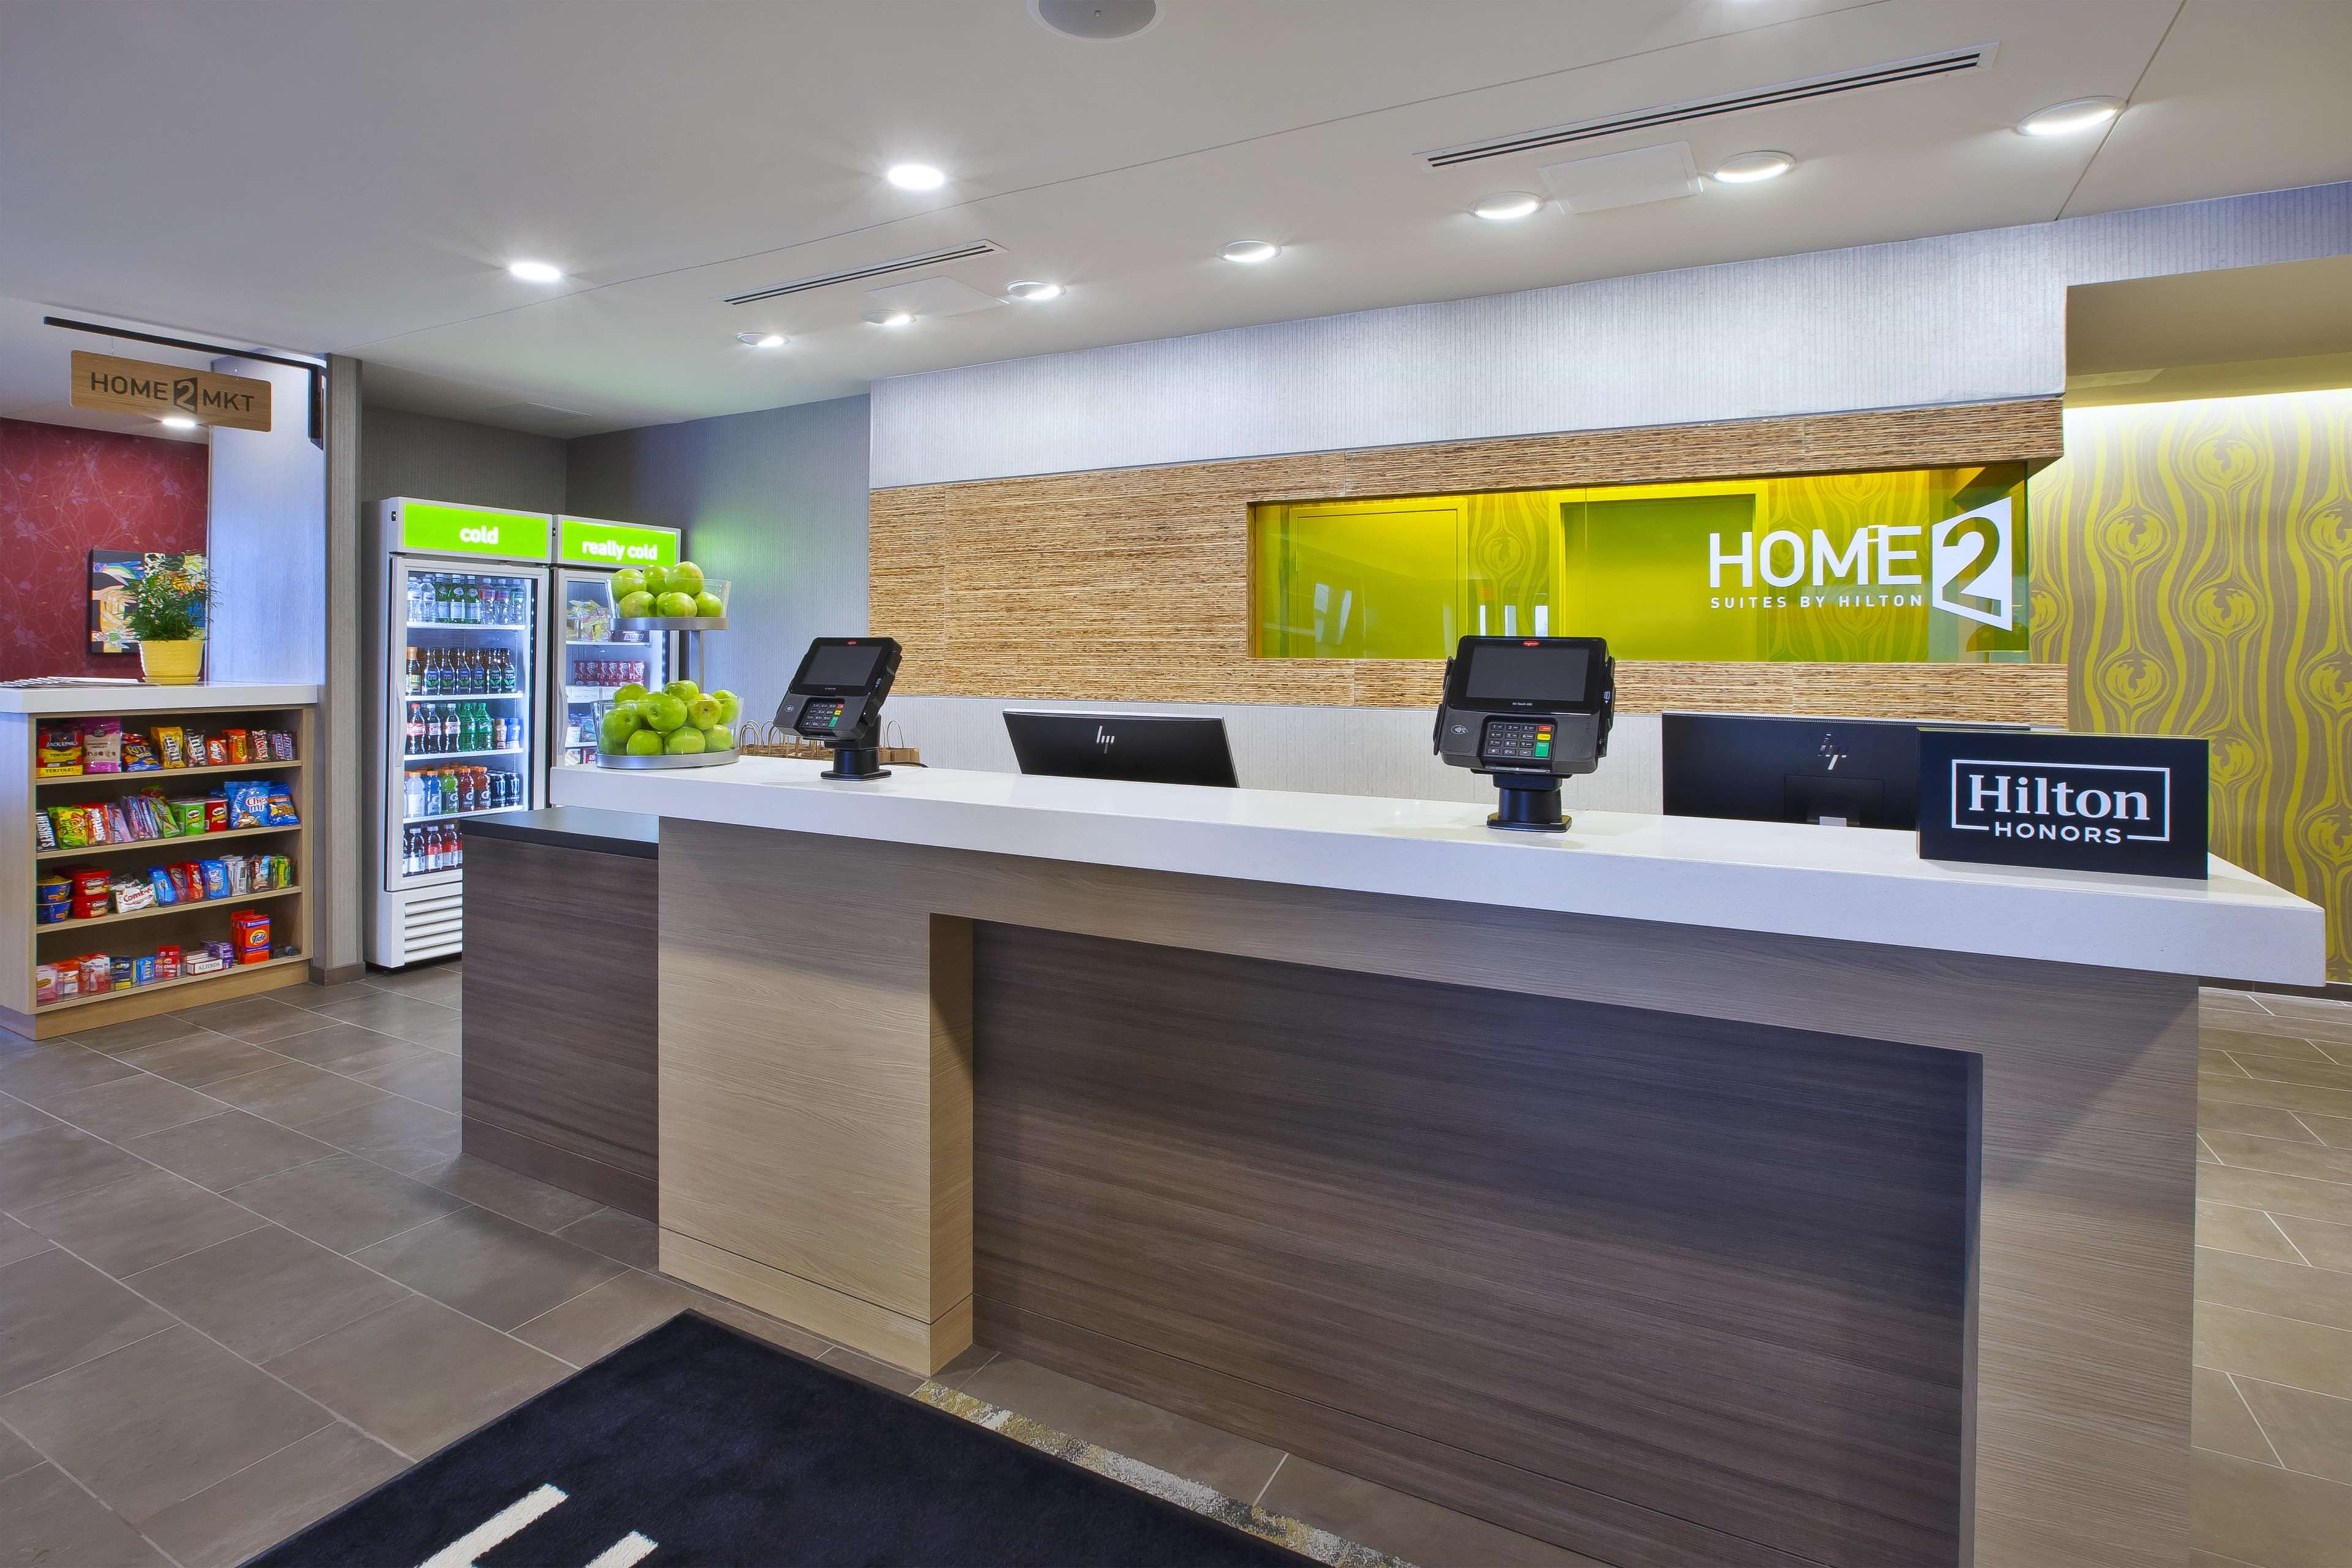 Home2 Suites by Hilton Holland image 1